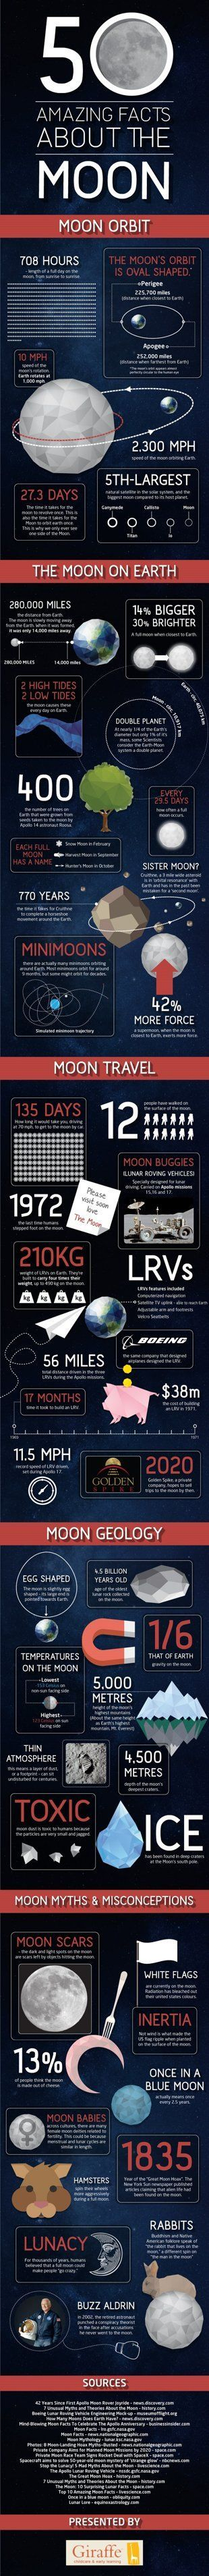 50 Amazing facts about our Moon -- info graphic, #teaching #space #science